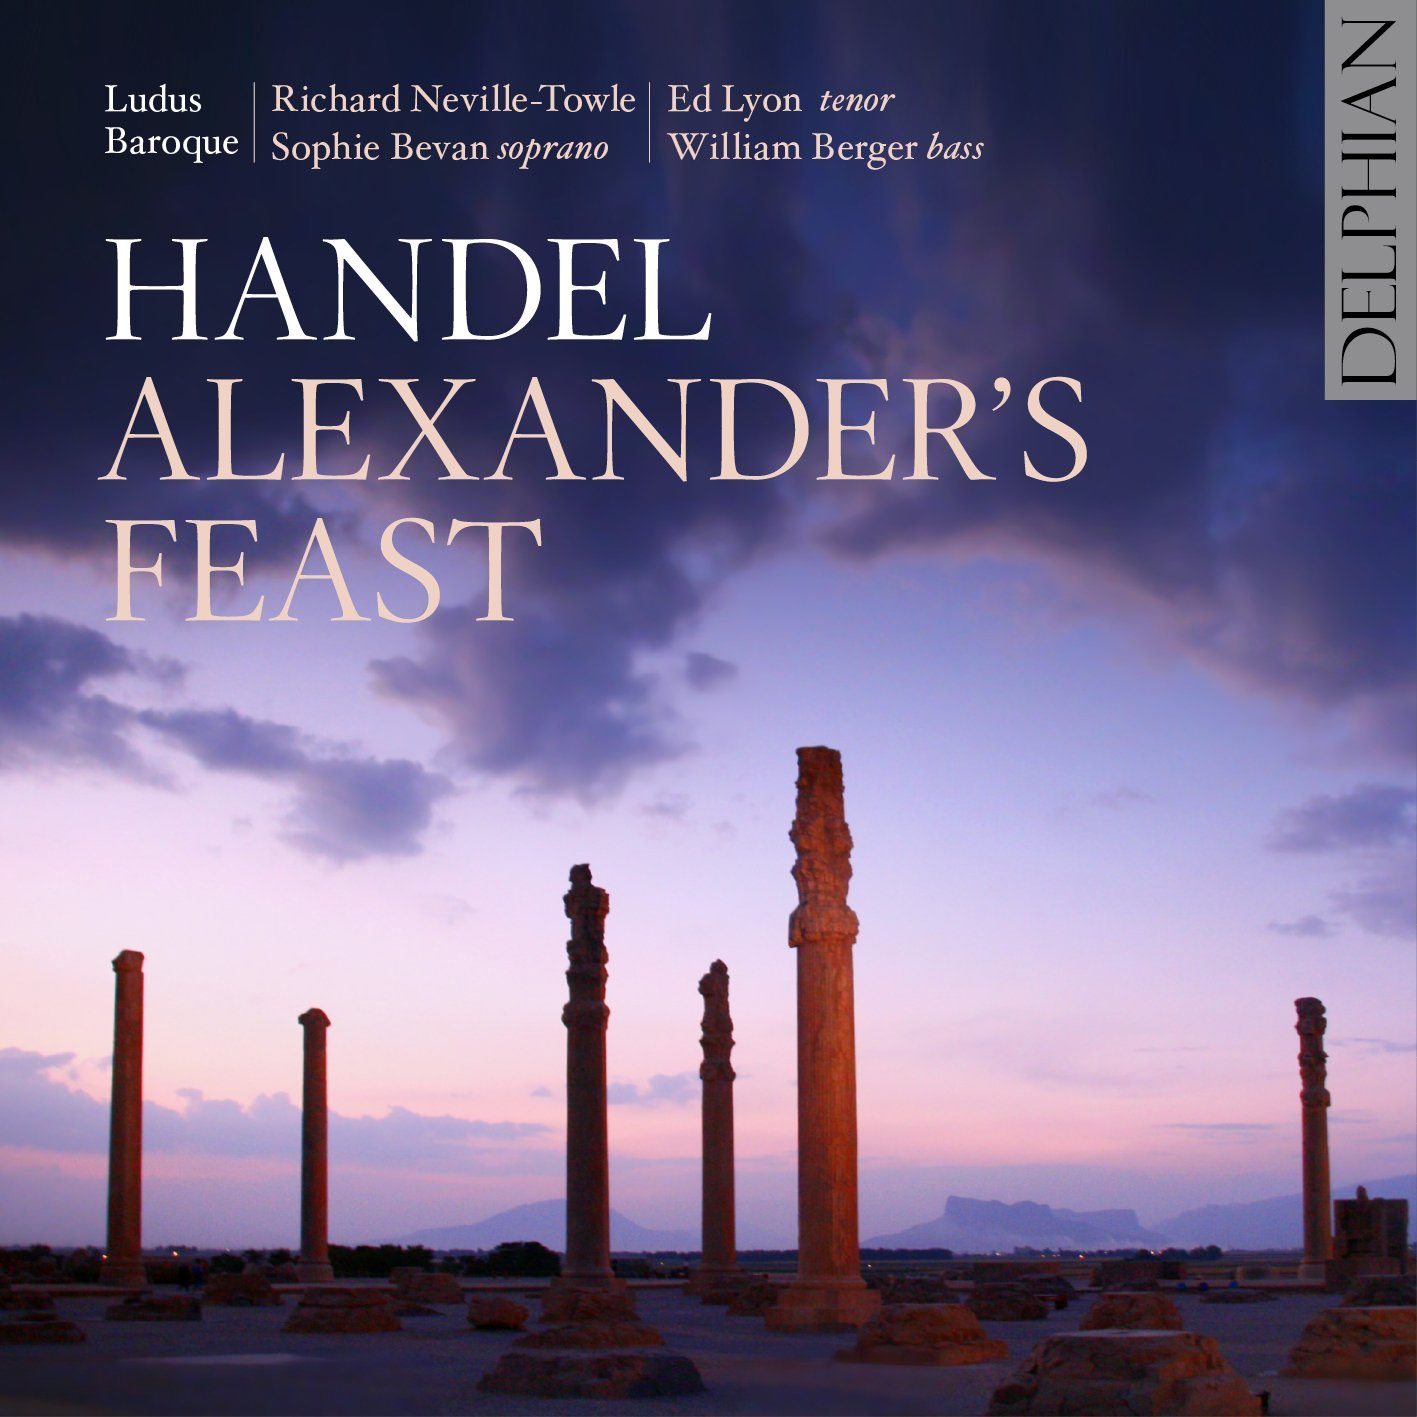 Handel: Alexander's Feast (2CD) CD Delphian Records